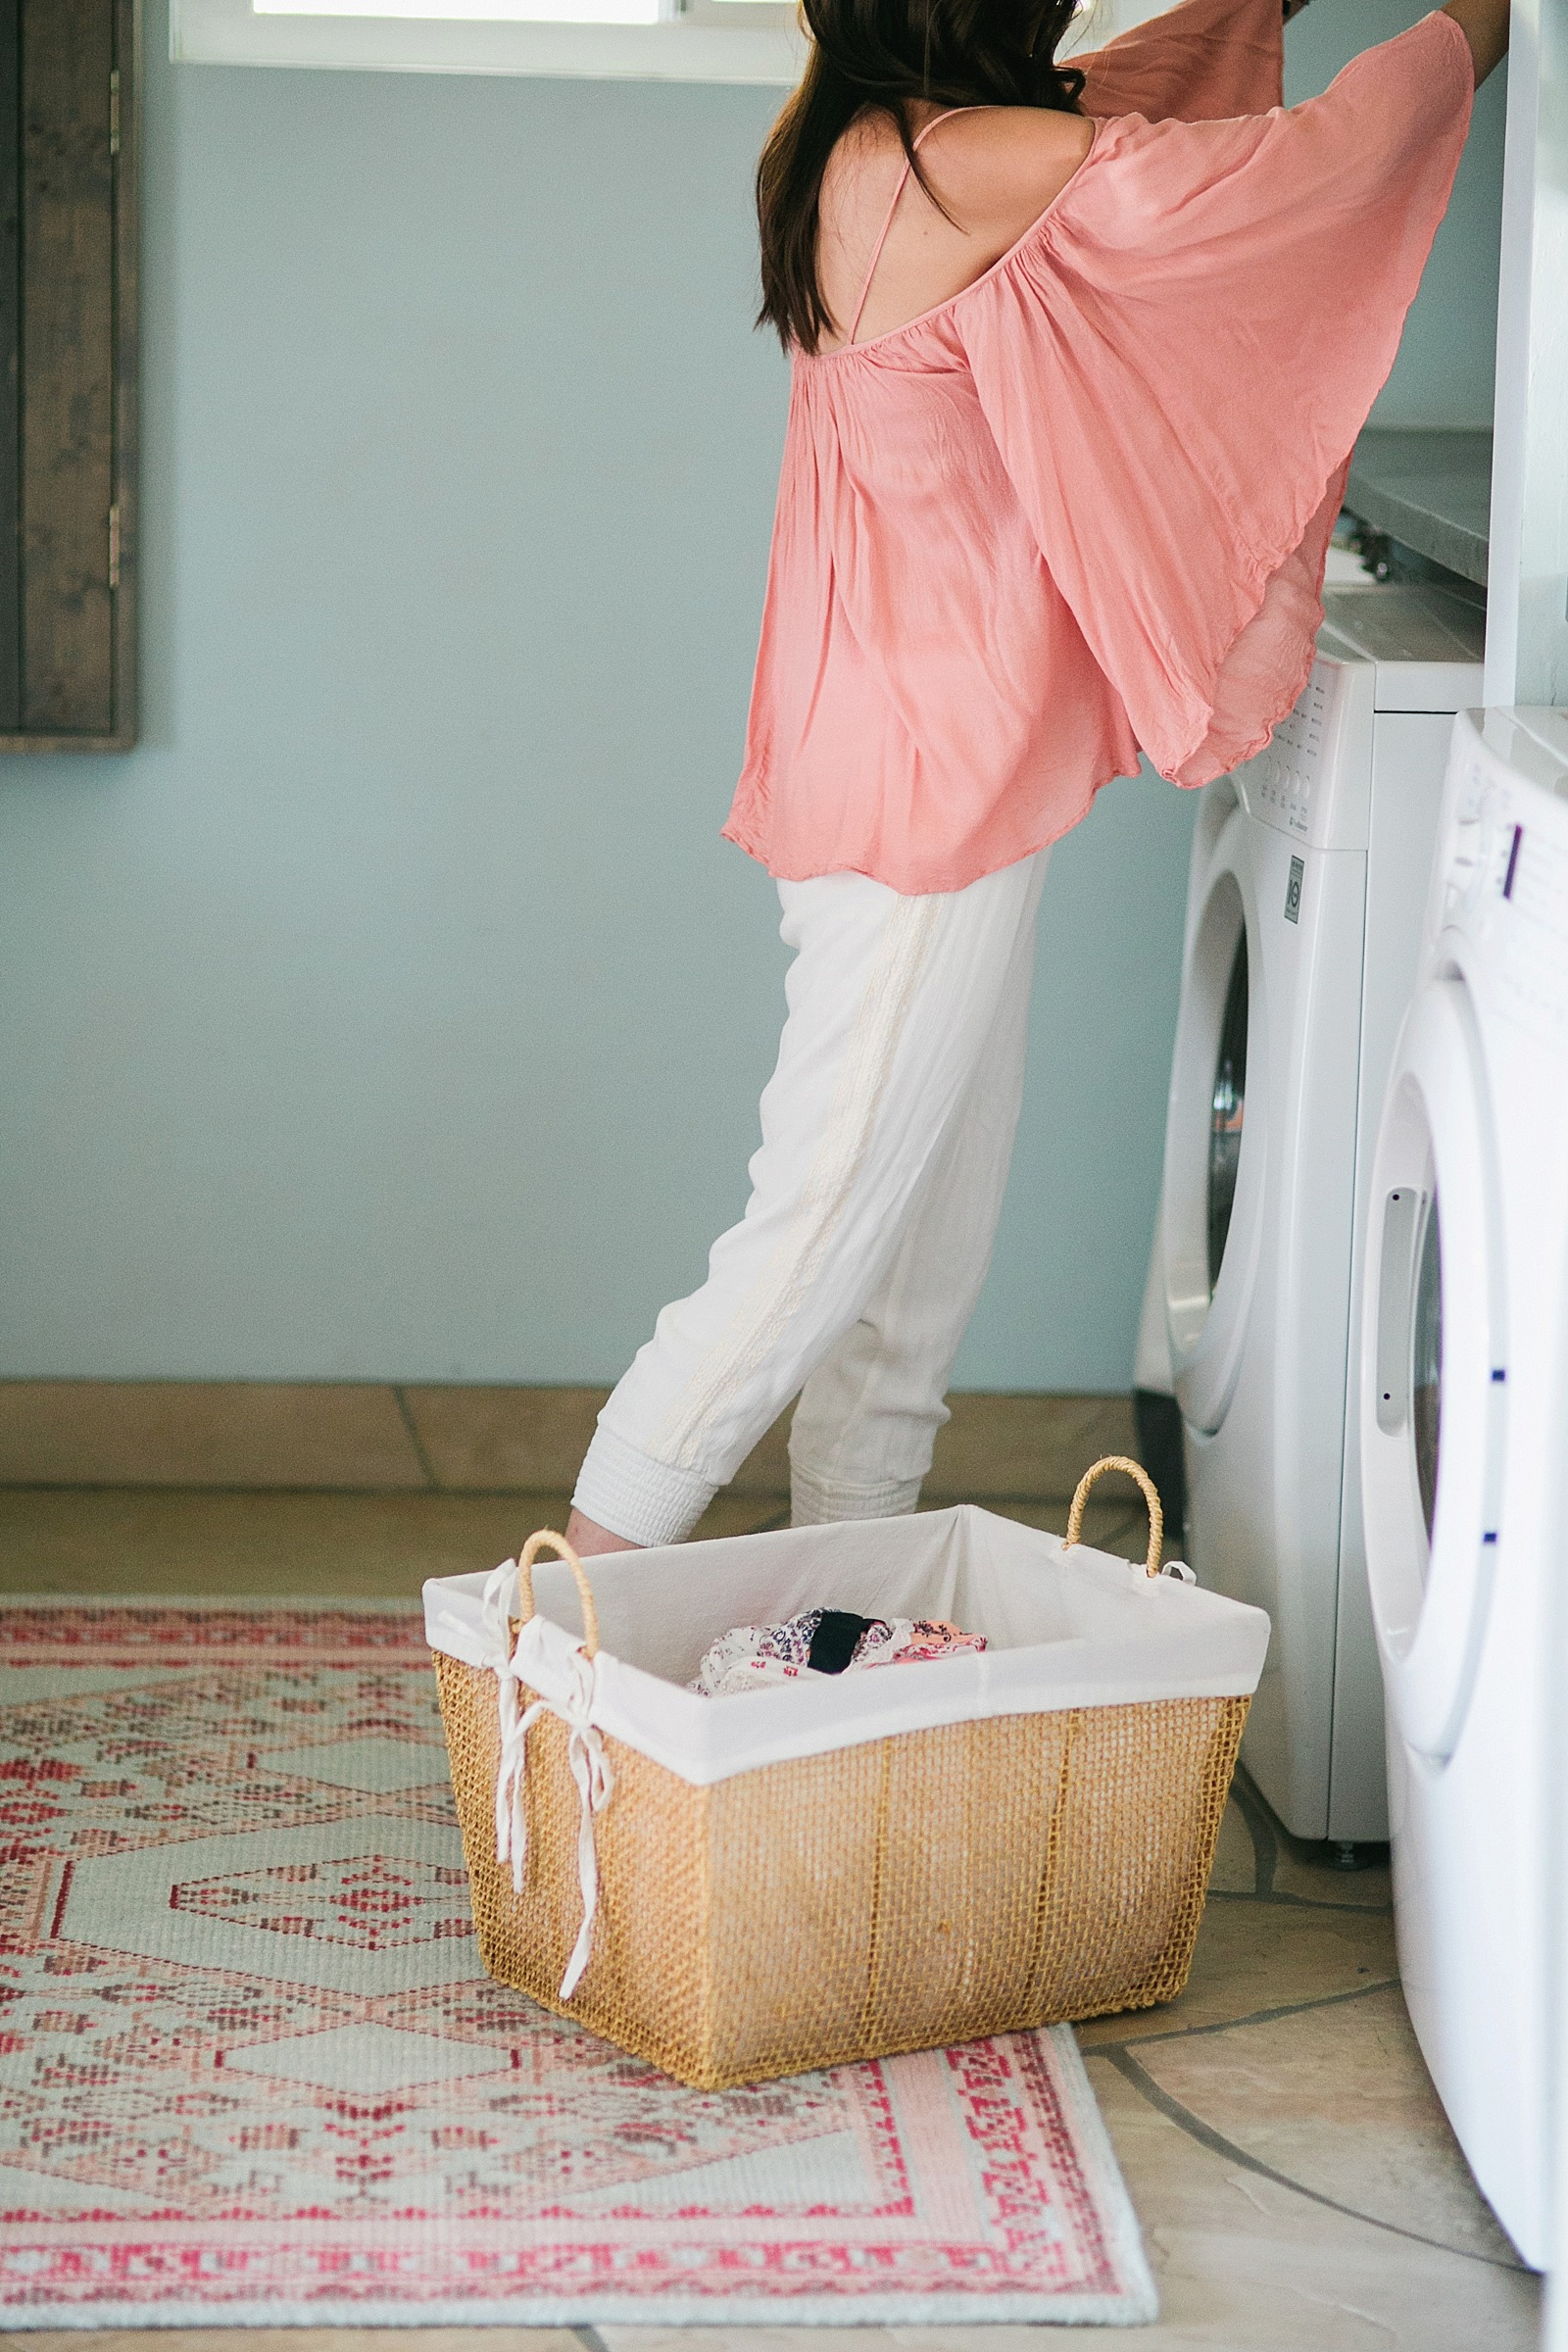 rugstudio-com-rug-studio-pink-sea-foam-laundry-room-rustic-mud-room-diana-elizabeth-blog_0069